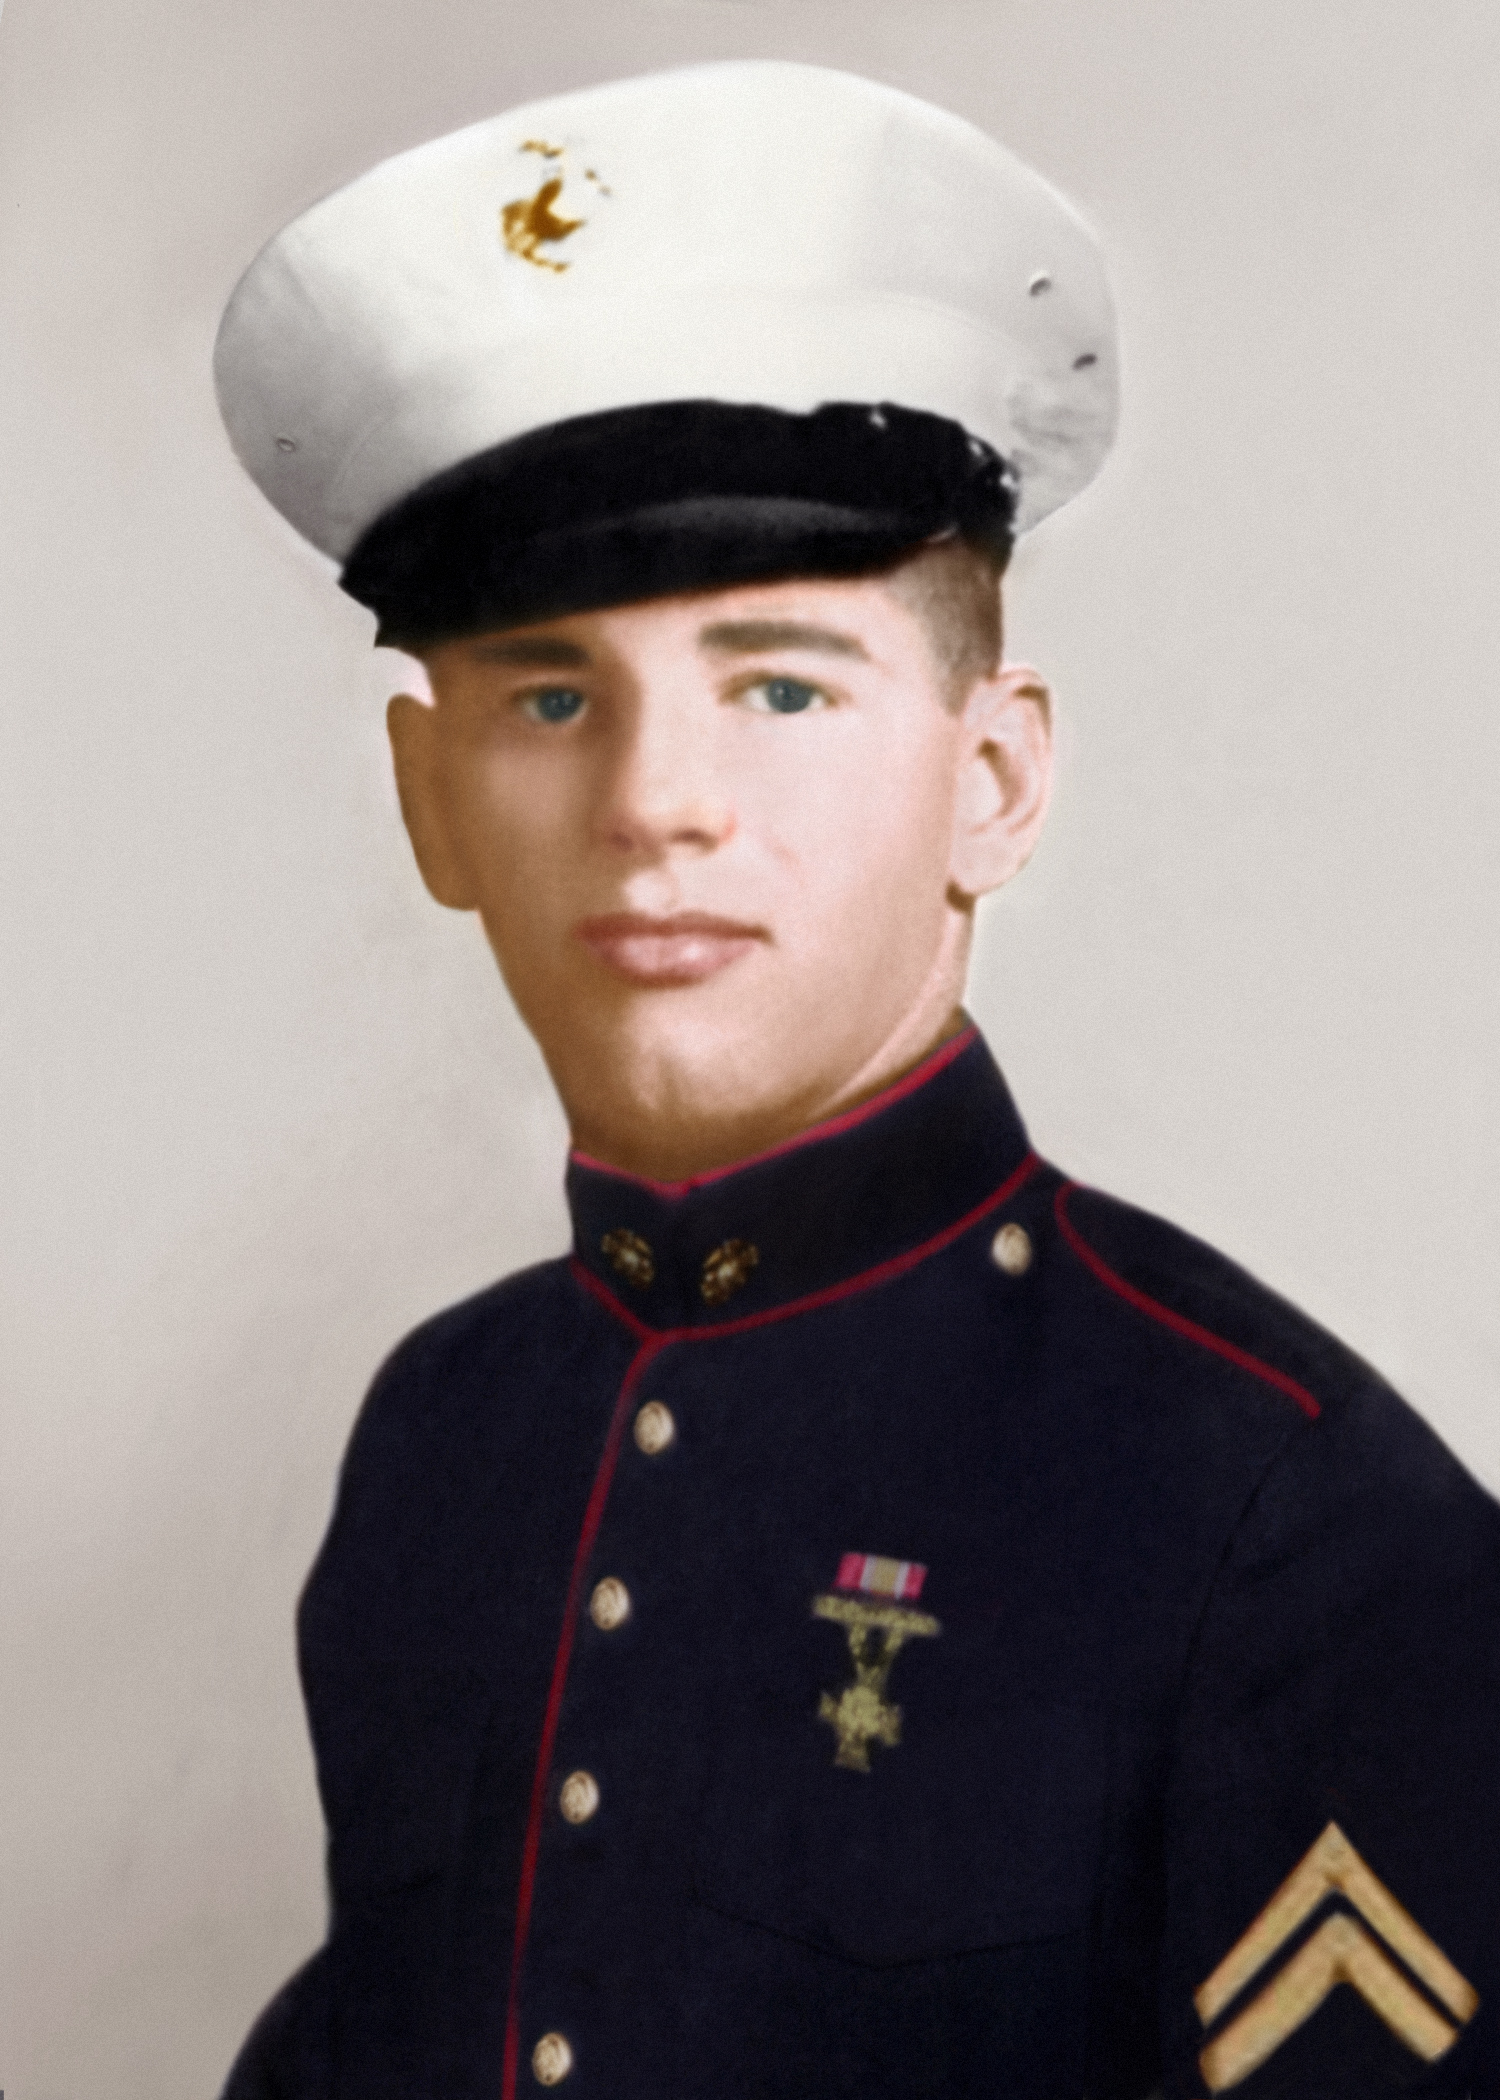 Richard Brockman in his Dress Blues, once a Marine always a Marine